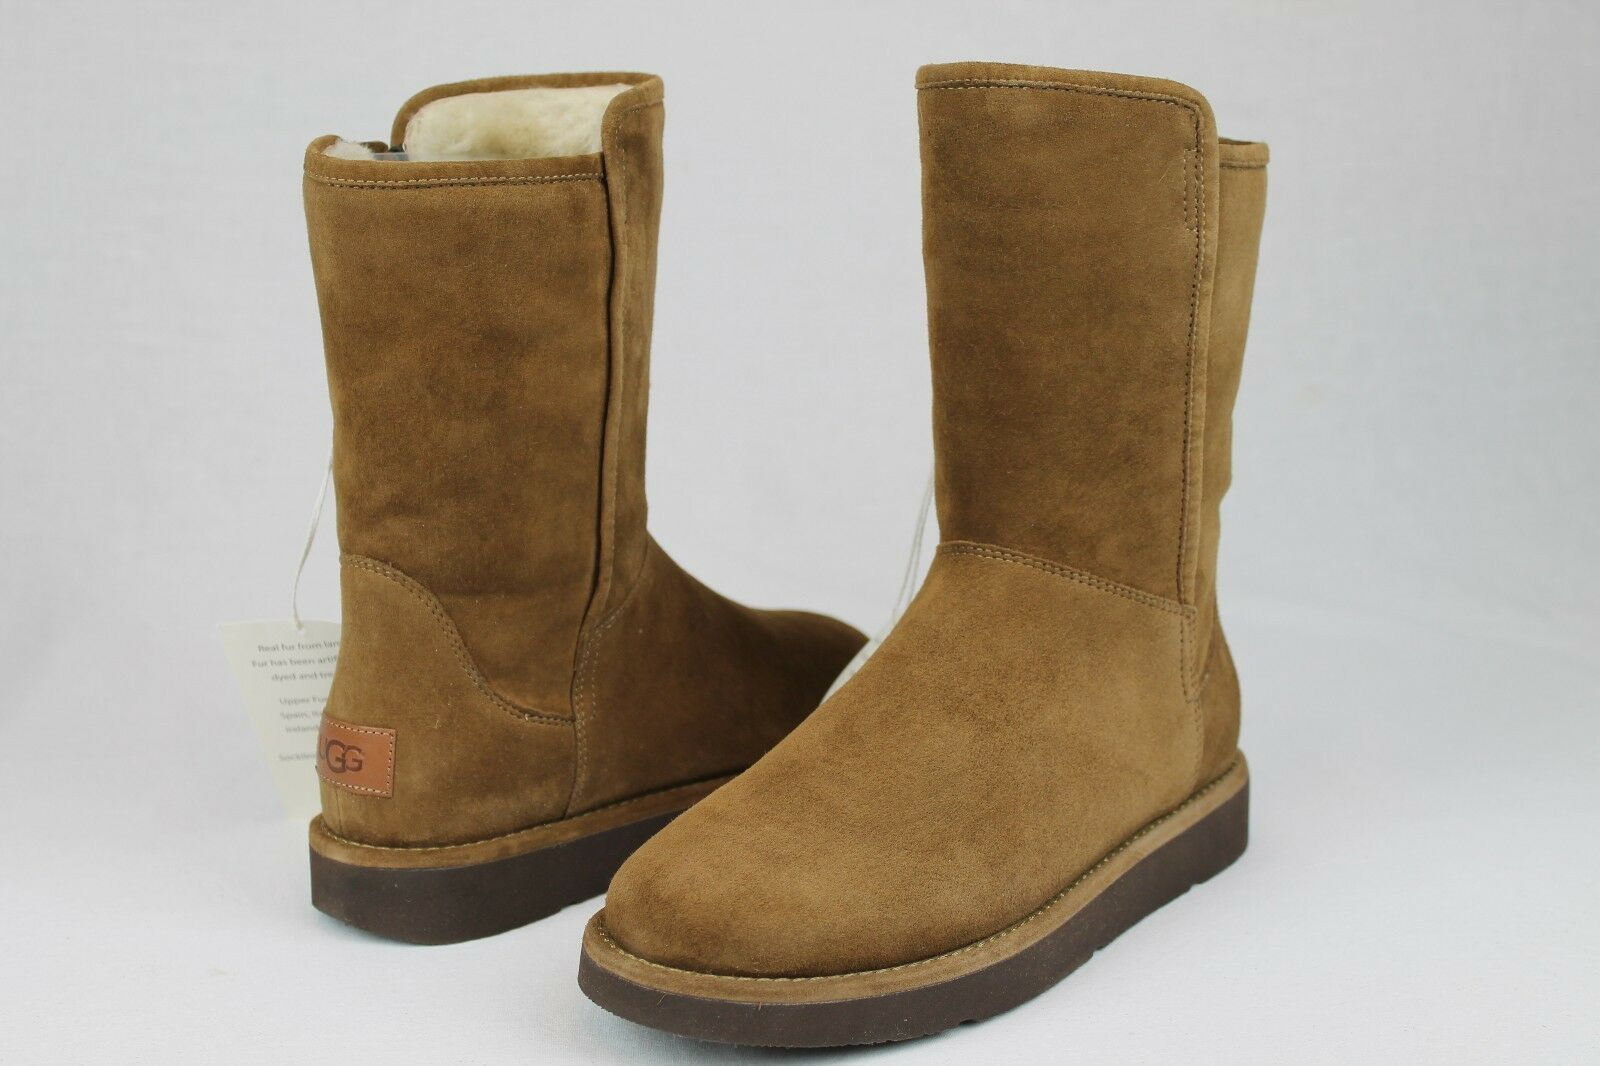 a098cbd037c UGG Collection Abree Short Bruno Suede Sheepskin BOOTS Womens Size 10 US